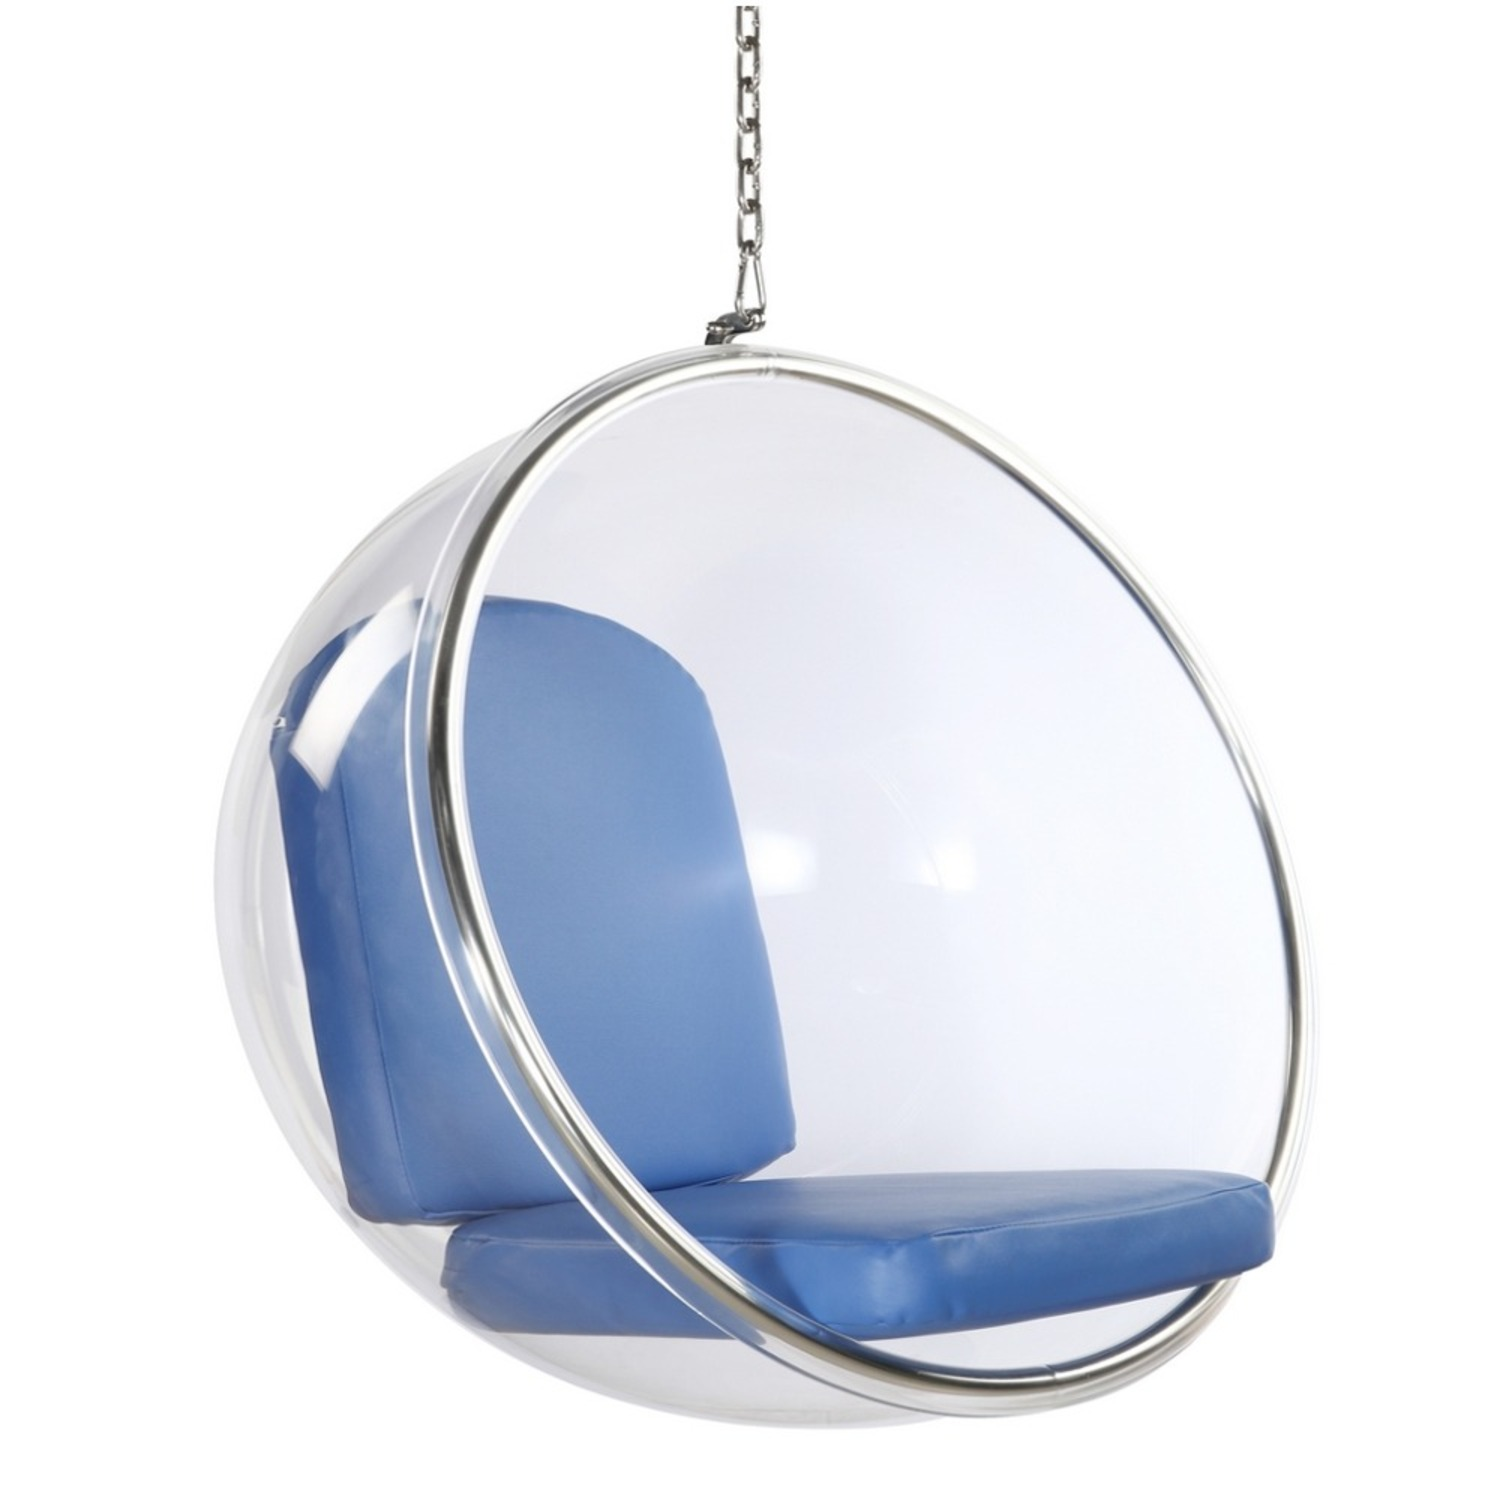 Hanging Chair In Clear Acrylic & Blue PU Leather - image-0